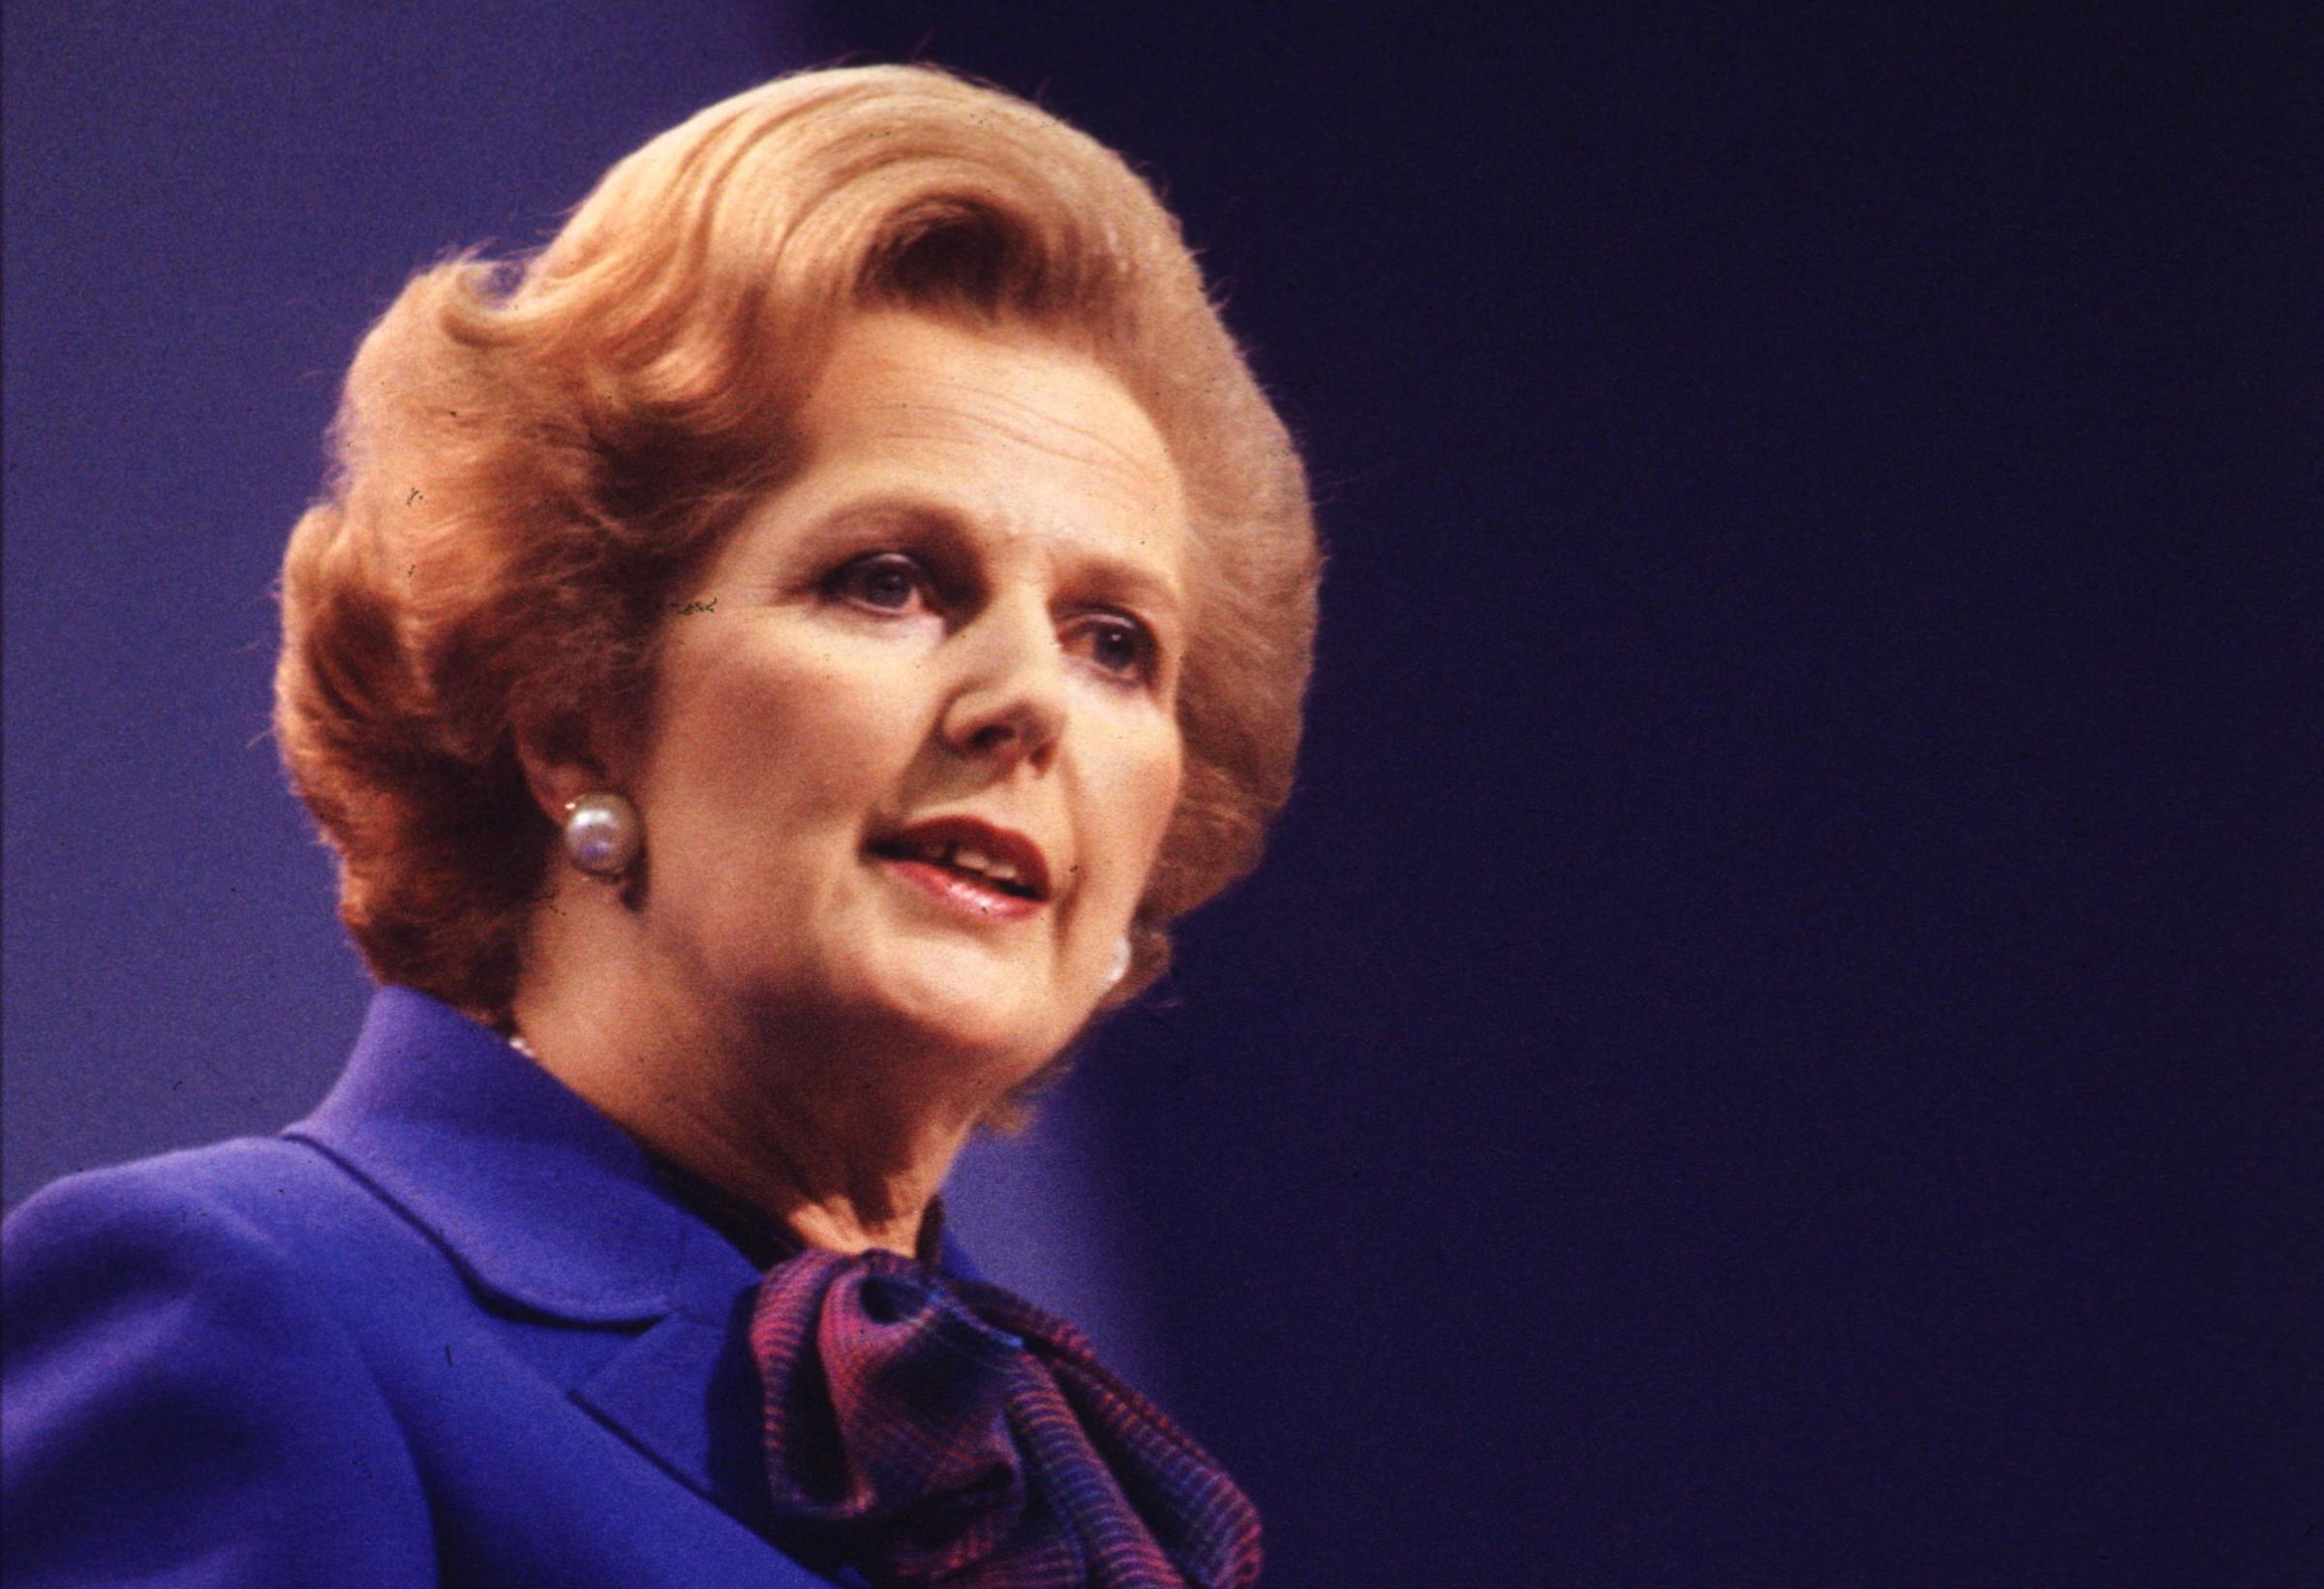 Margaret Thatcher's upbringing was not quite as humble as she claimed